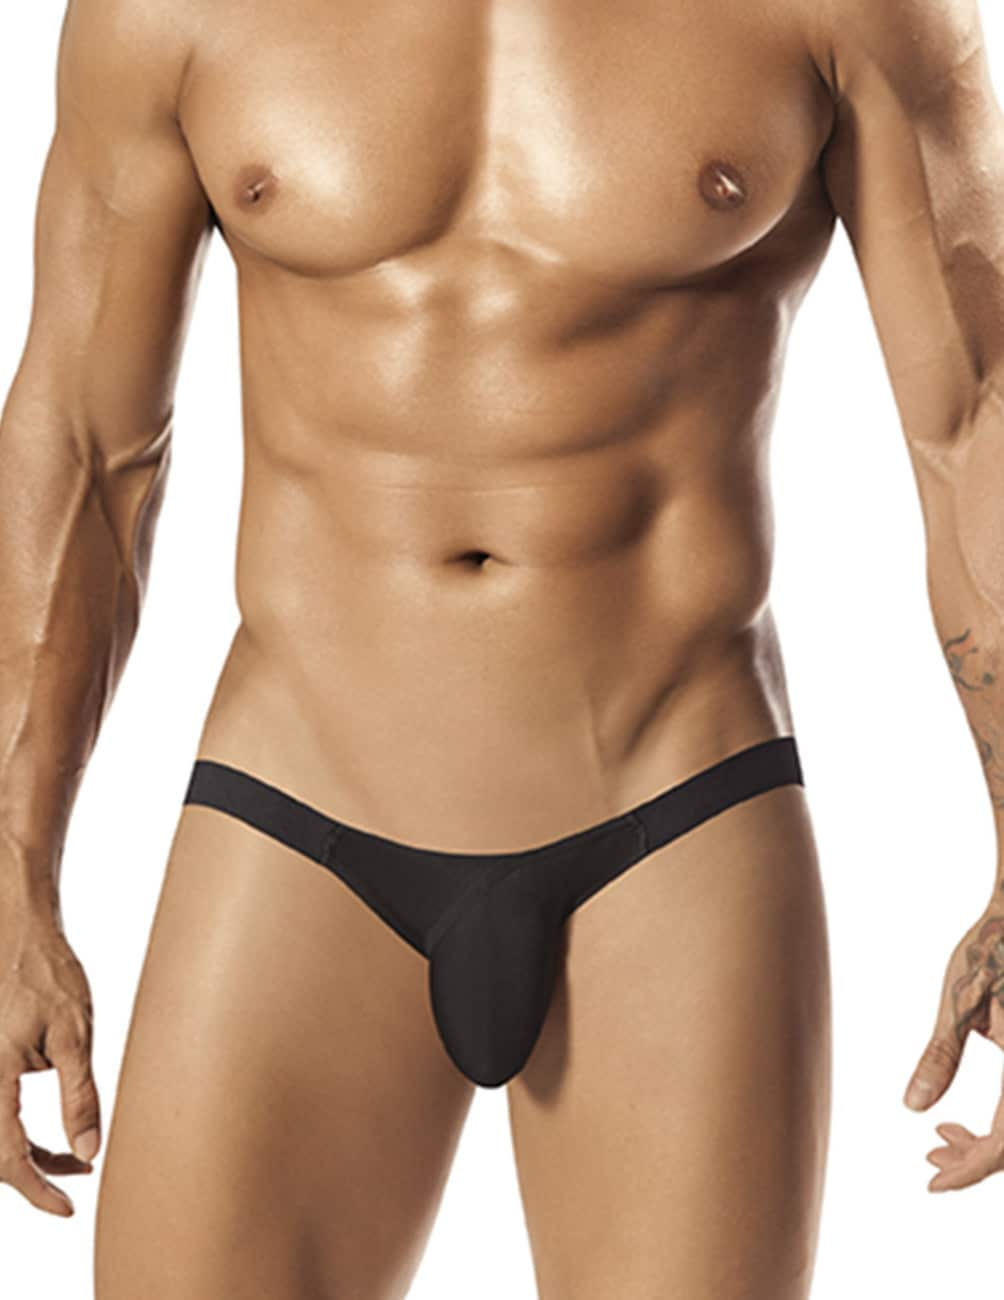 Male underwear model wearing PPU 1550 Slinger Sport Jockstrap available at www.MensUnderwear.io